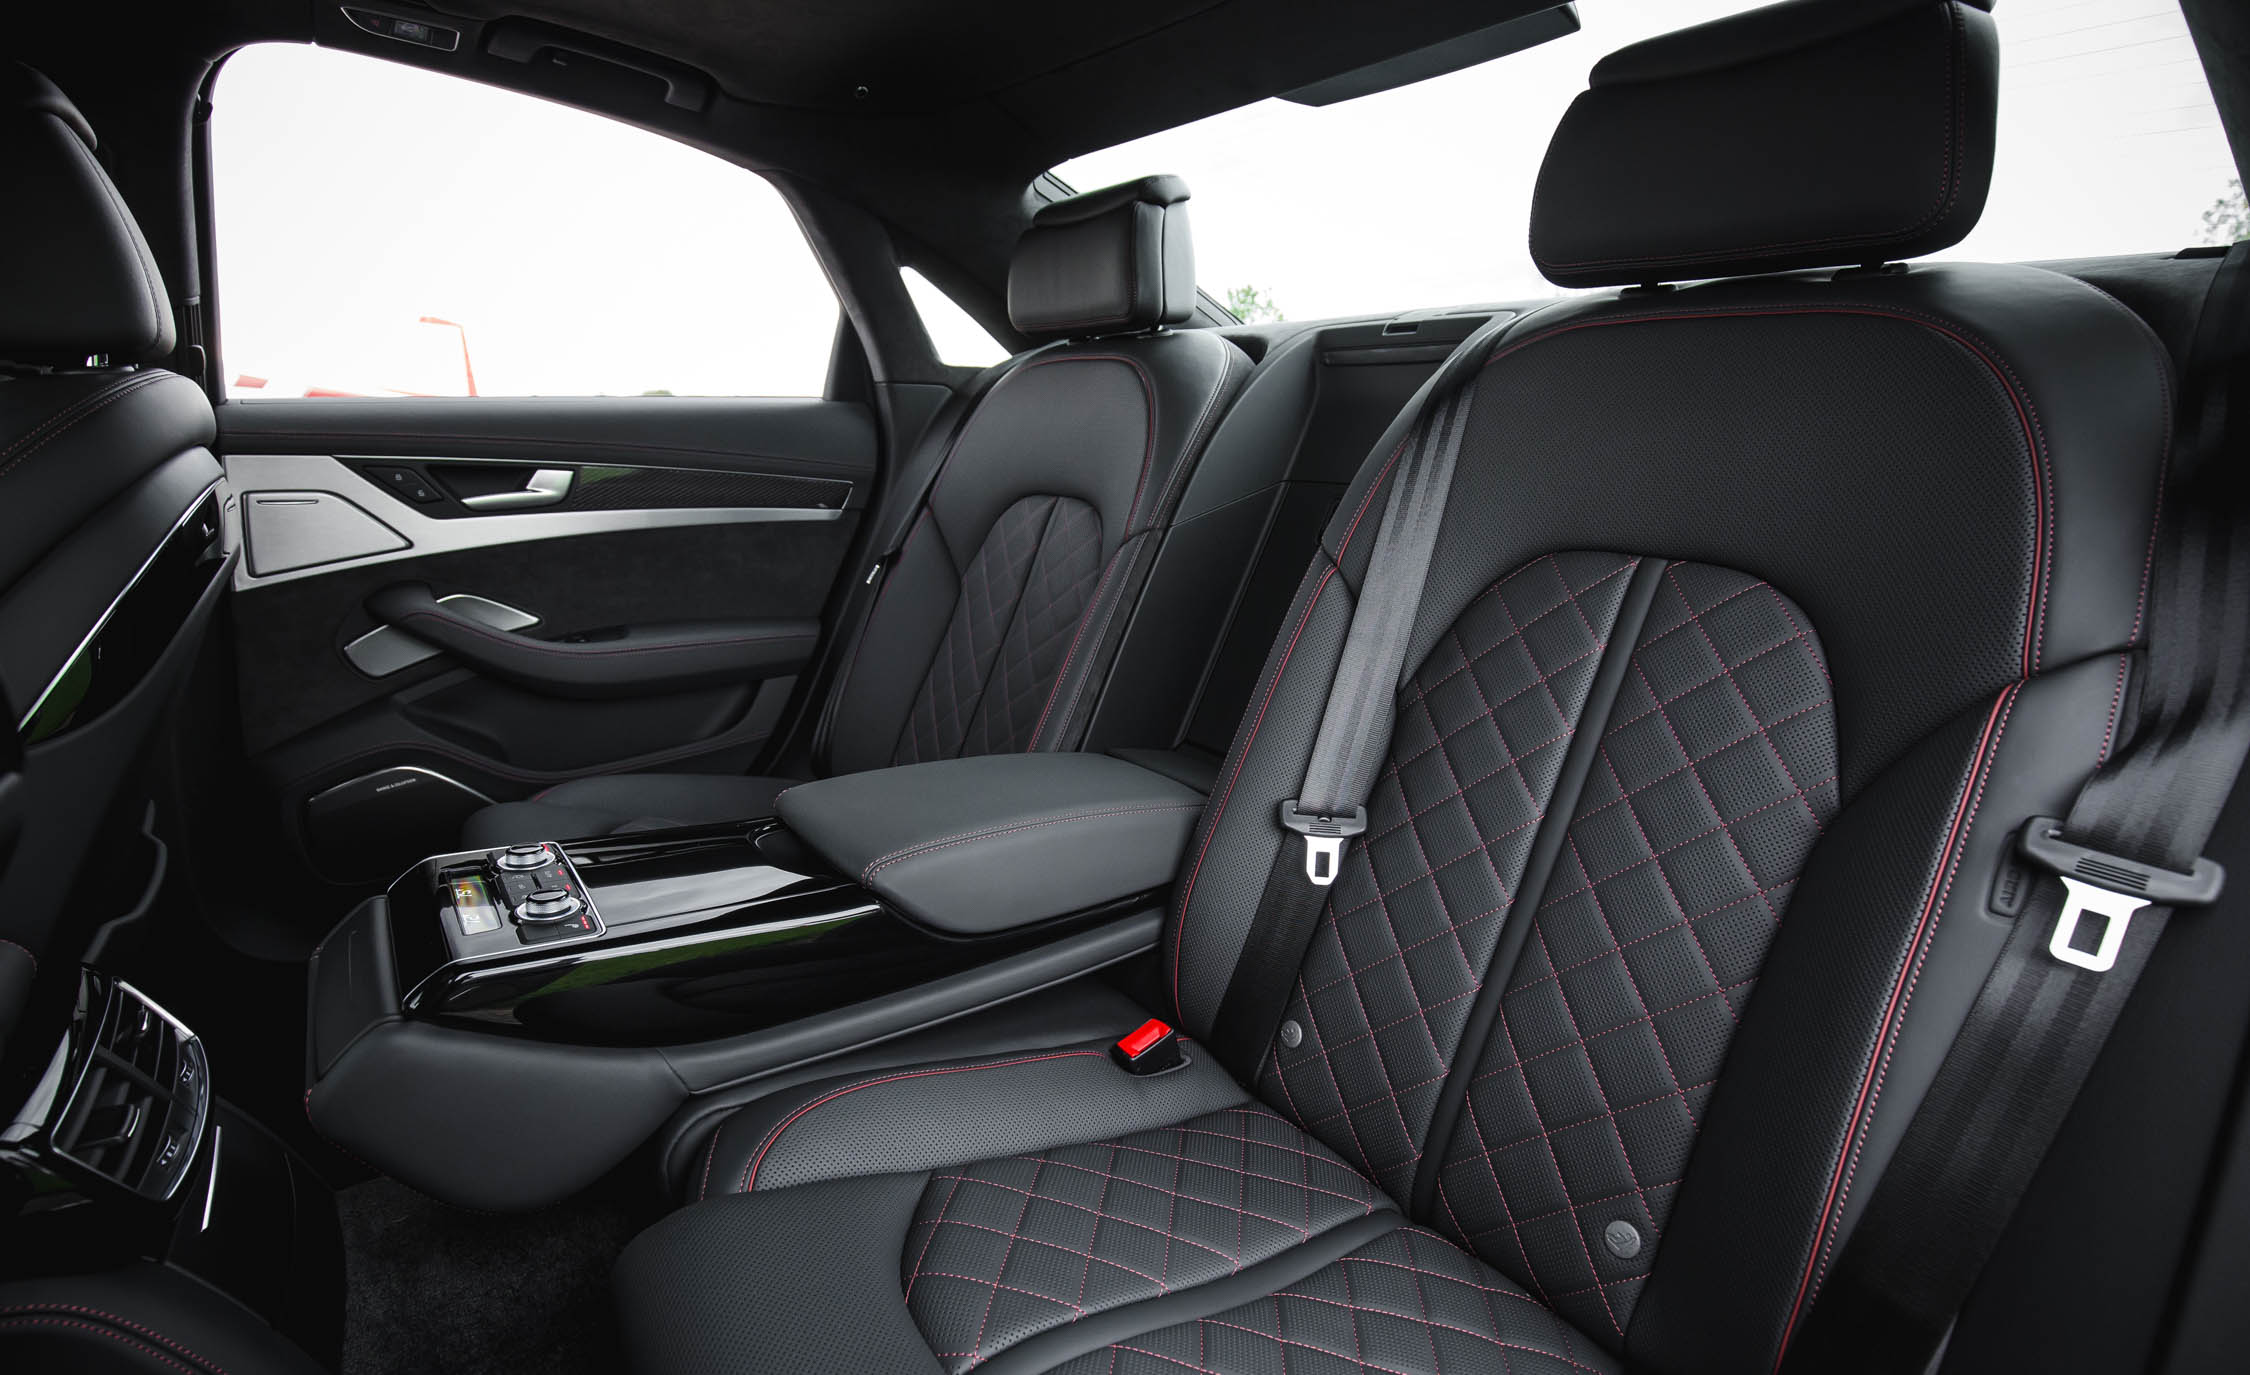 2017 Audi S8 Plus Interior Seats Rear (Photo 19 of 36)